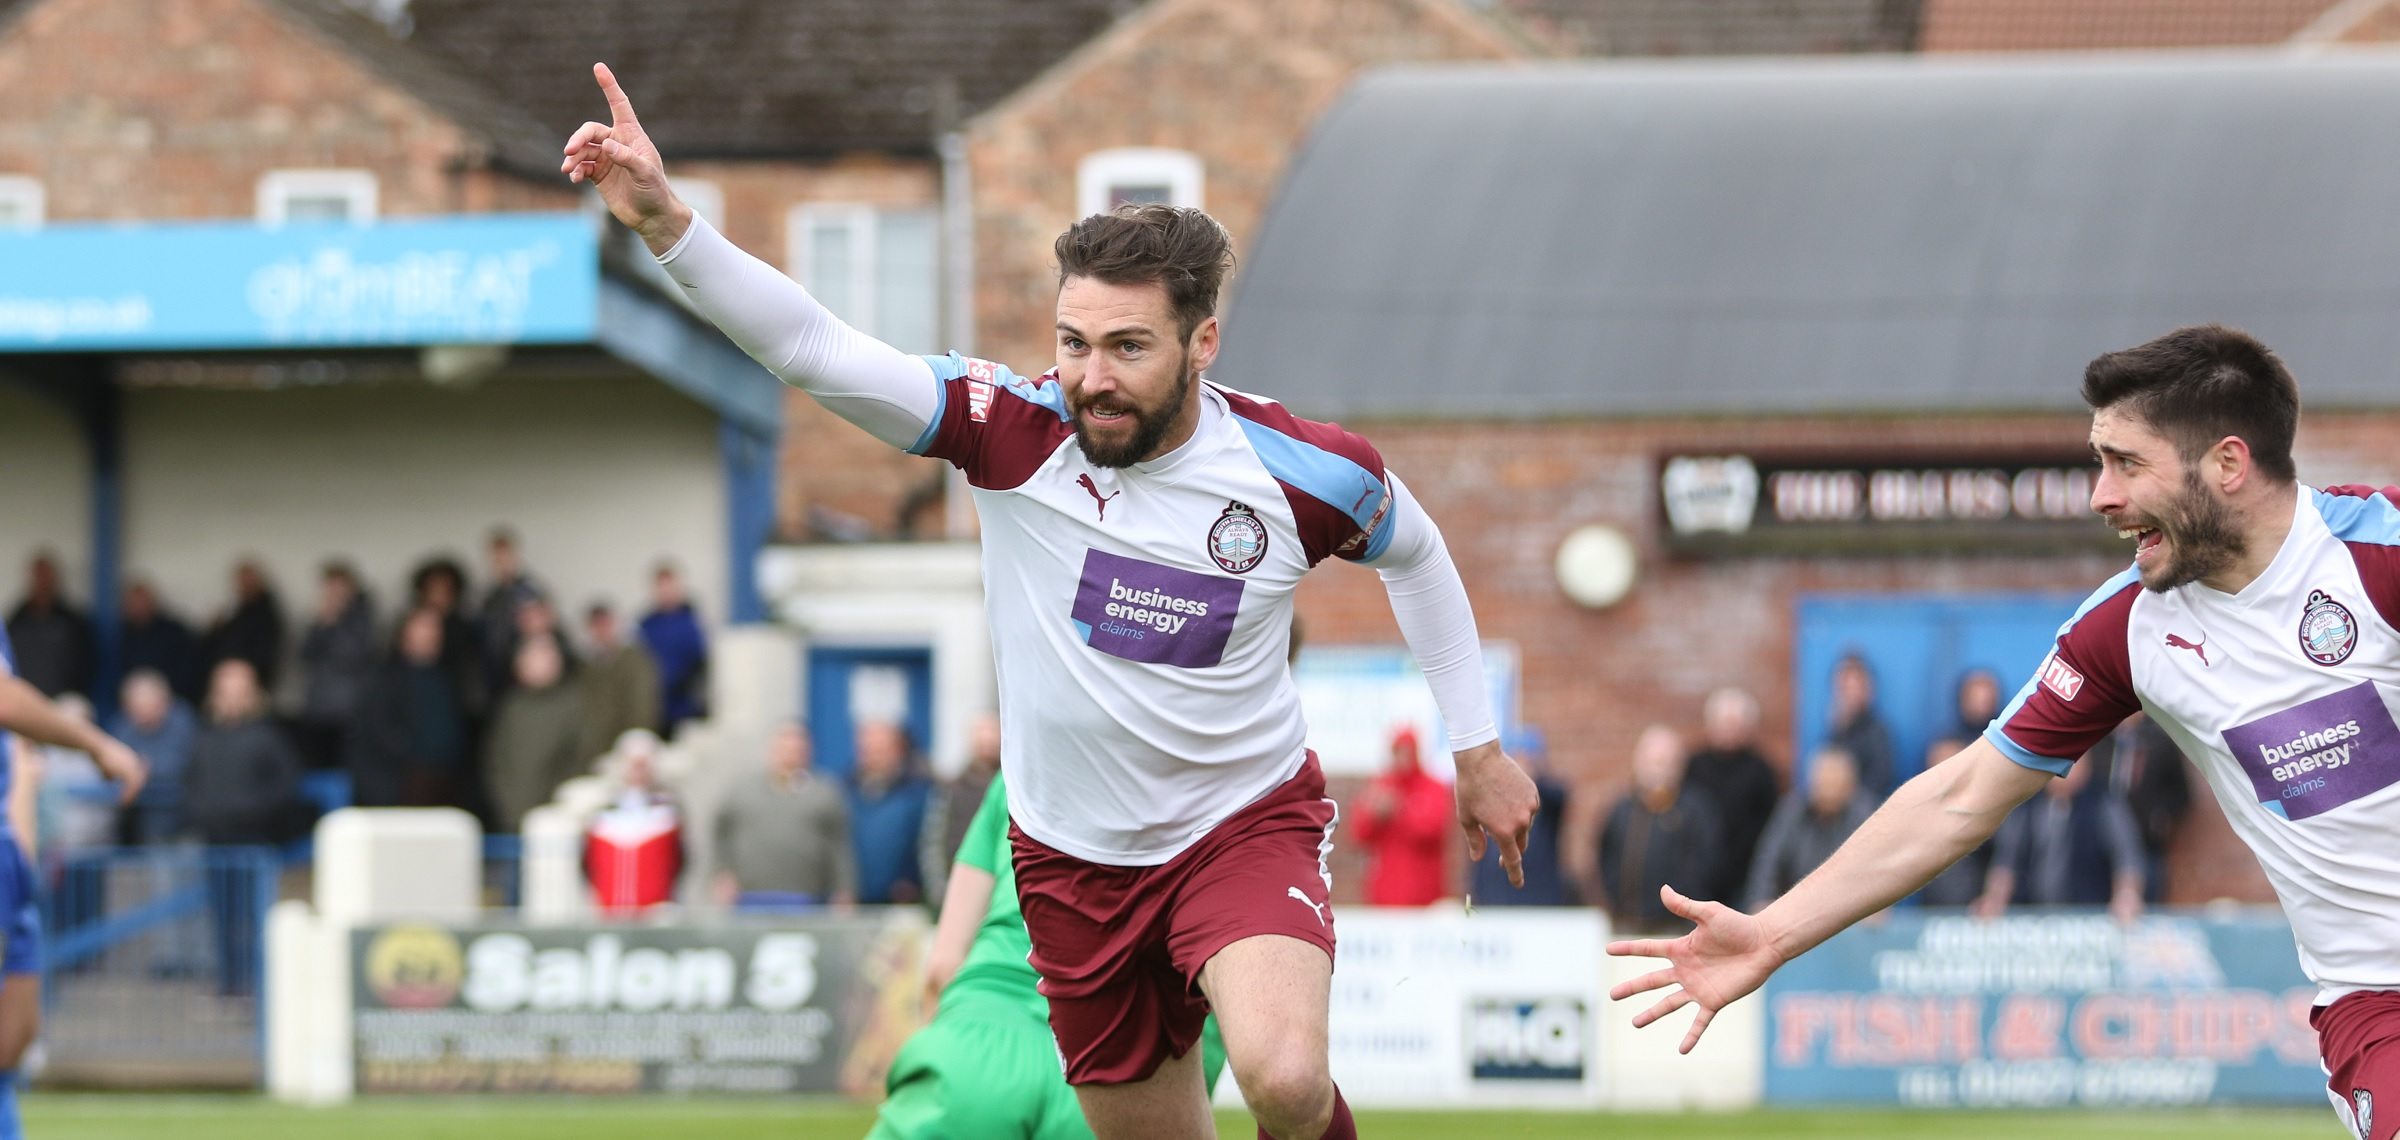 Gainsborough Trinity 0-1 South Shields: Play-off place for Mariners